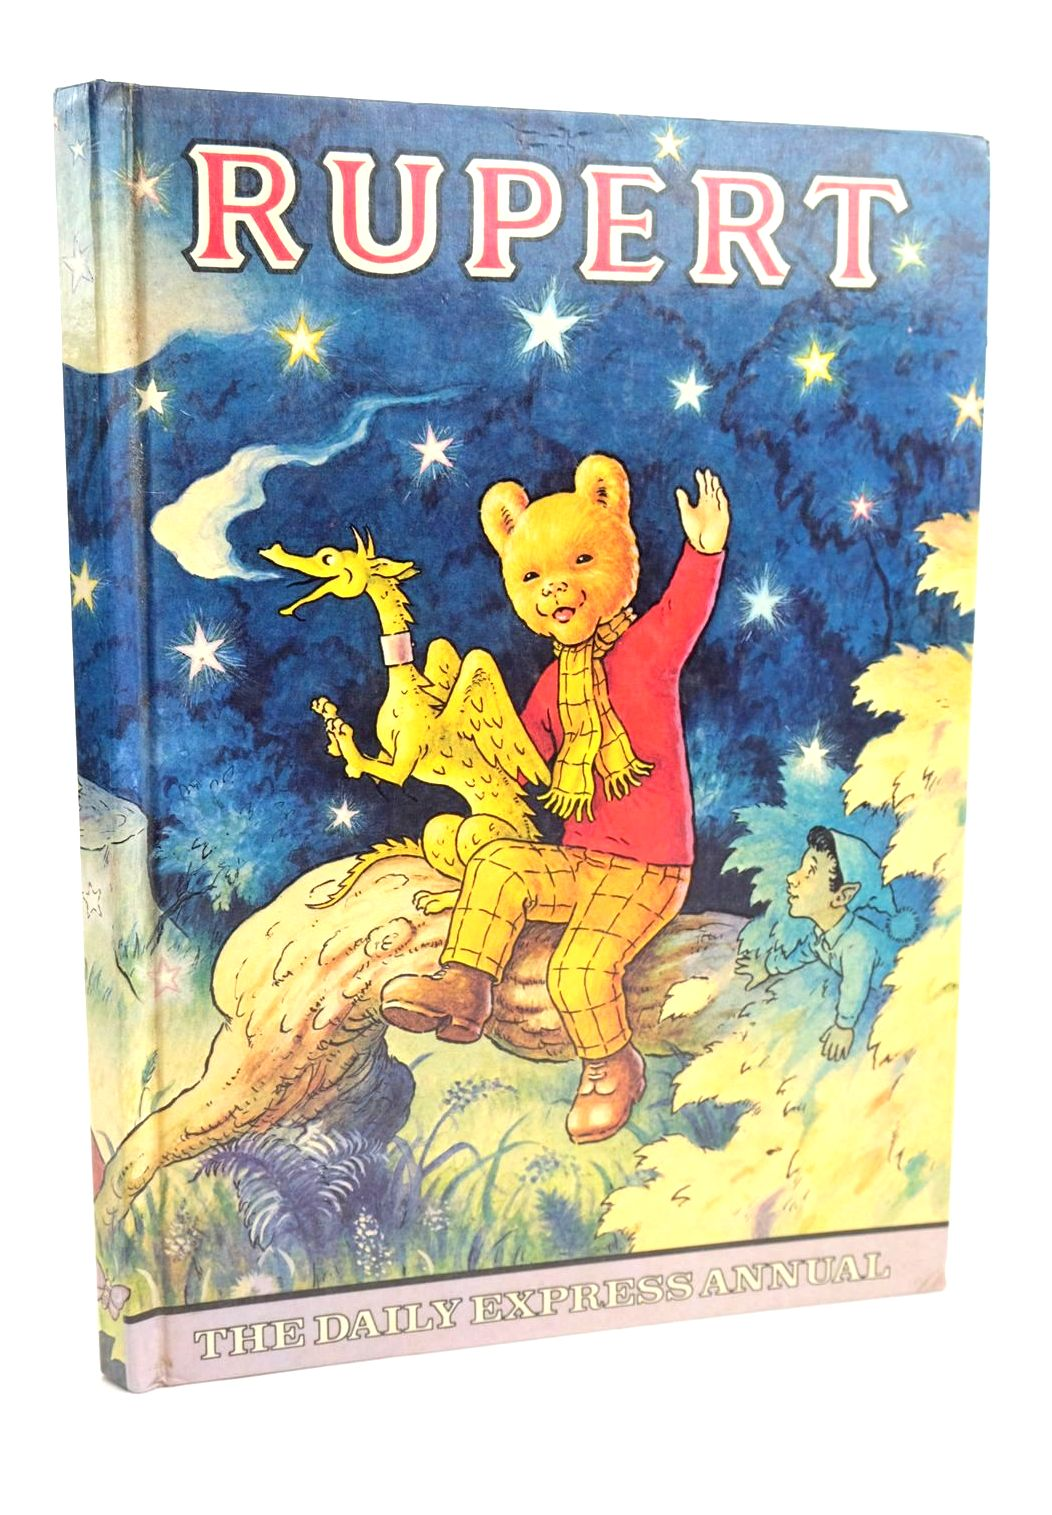 Photo of RUPERT ANNUAL 1979 illustrated by Harrold, John published by Daily Express (STOCK CODE: 1319731)  for sale by Stella & Rose's Books